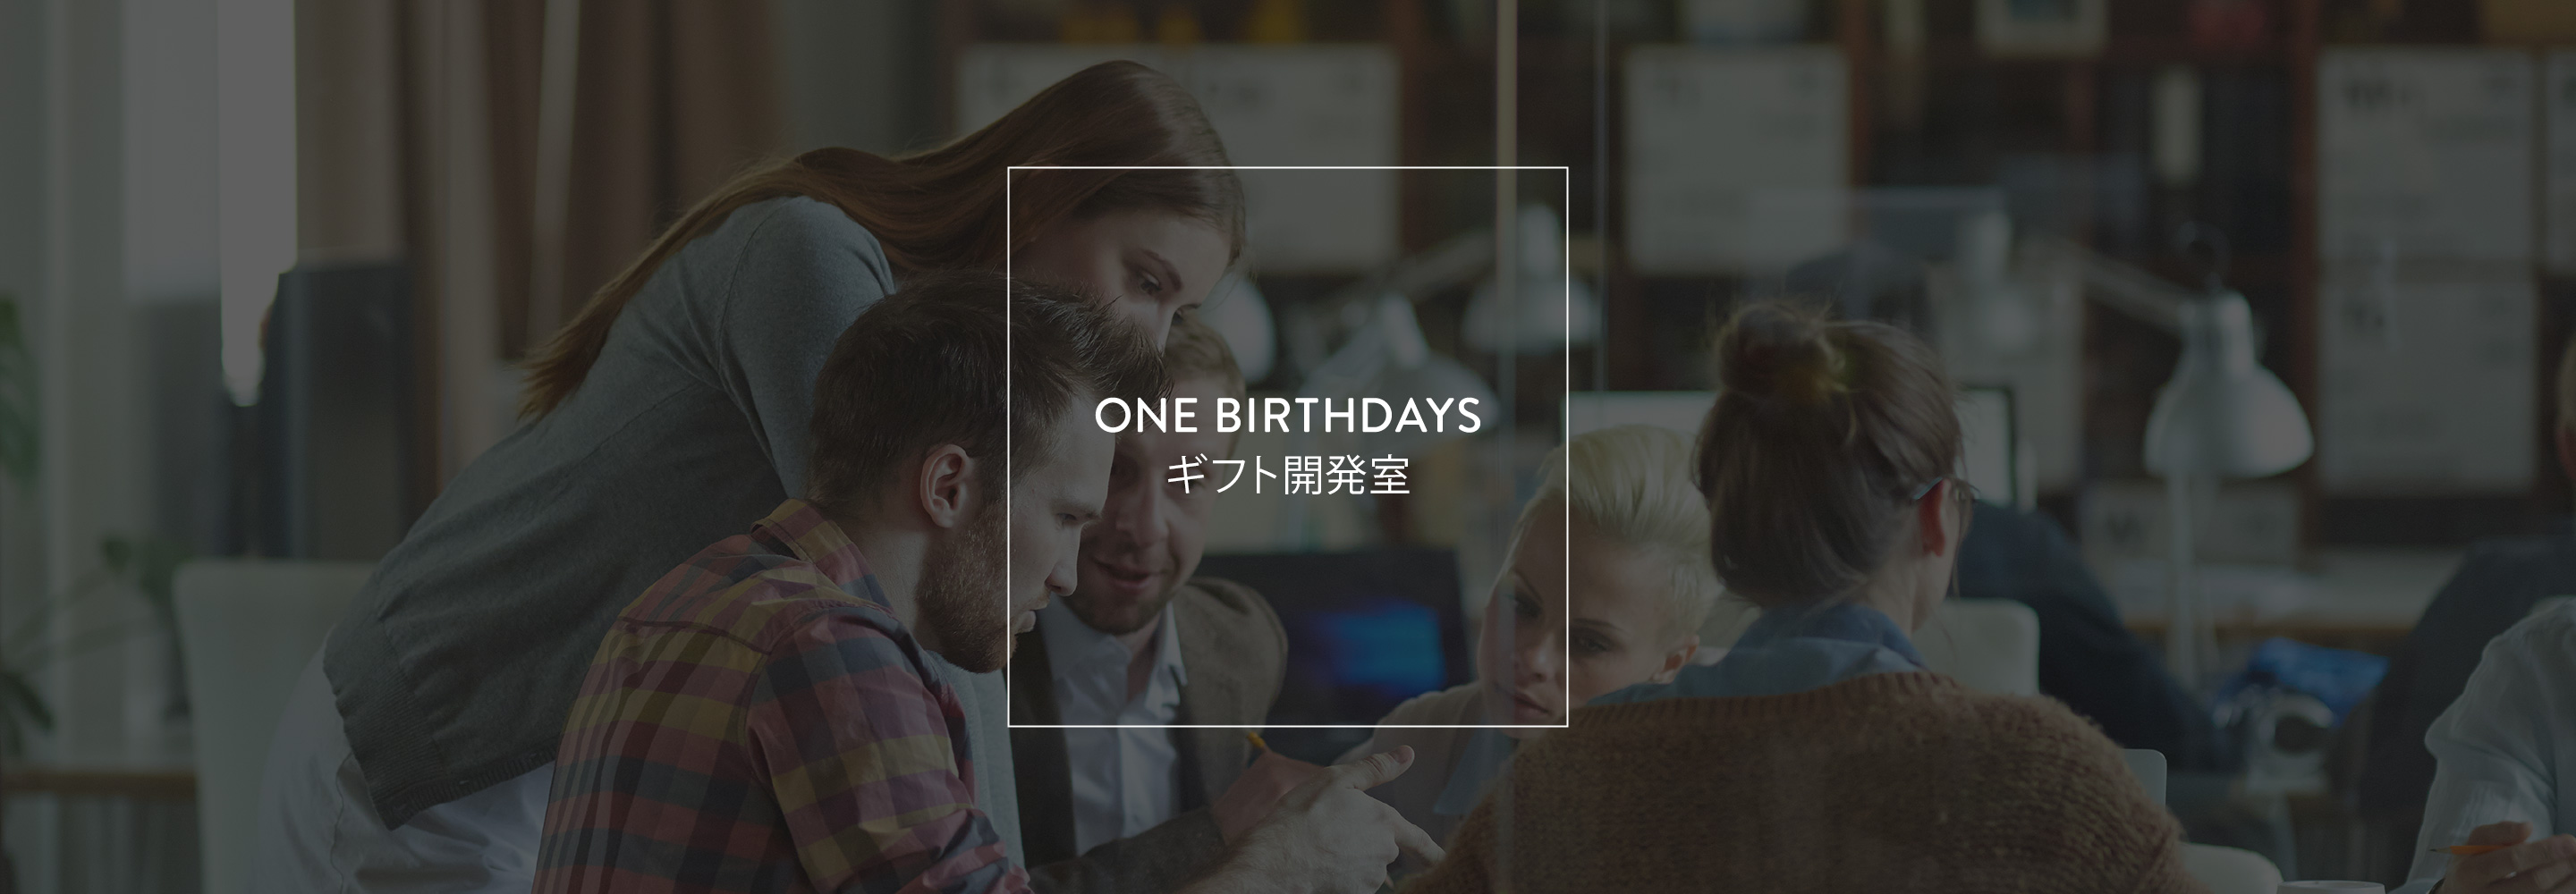 ONE BIRTHDAY ギフト開発室